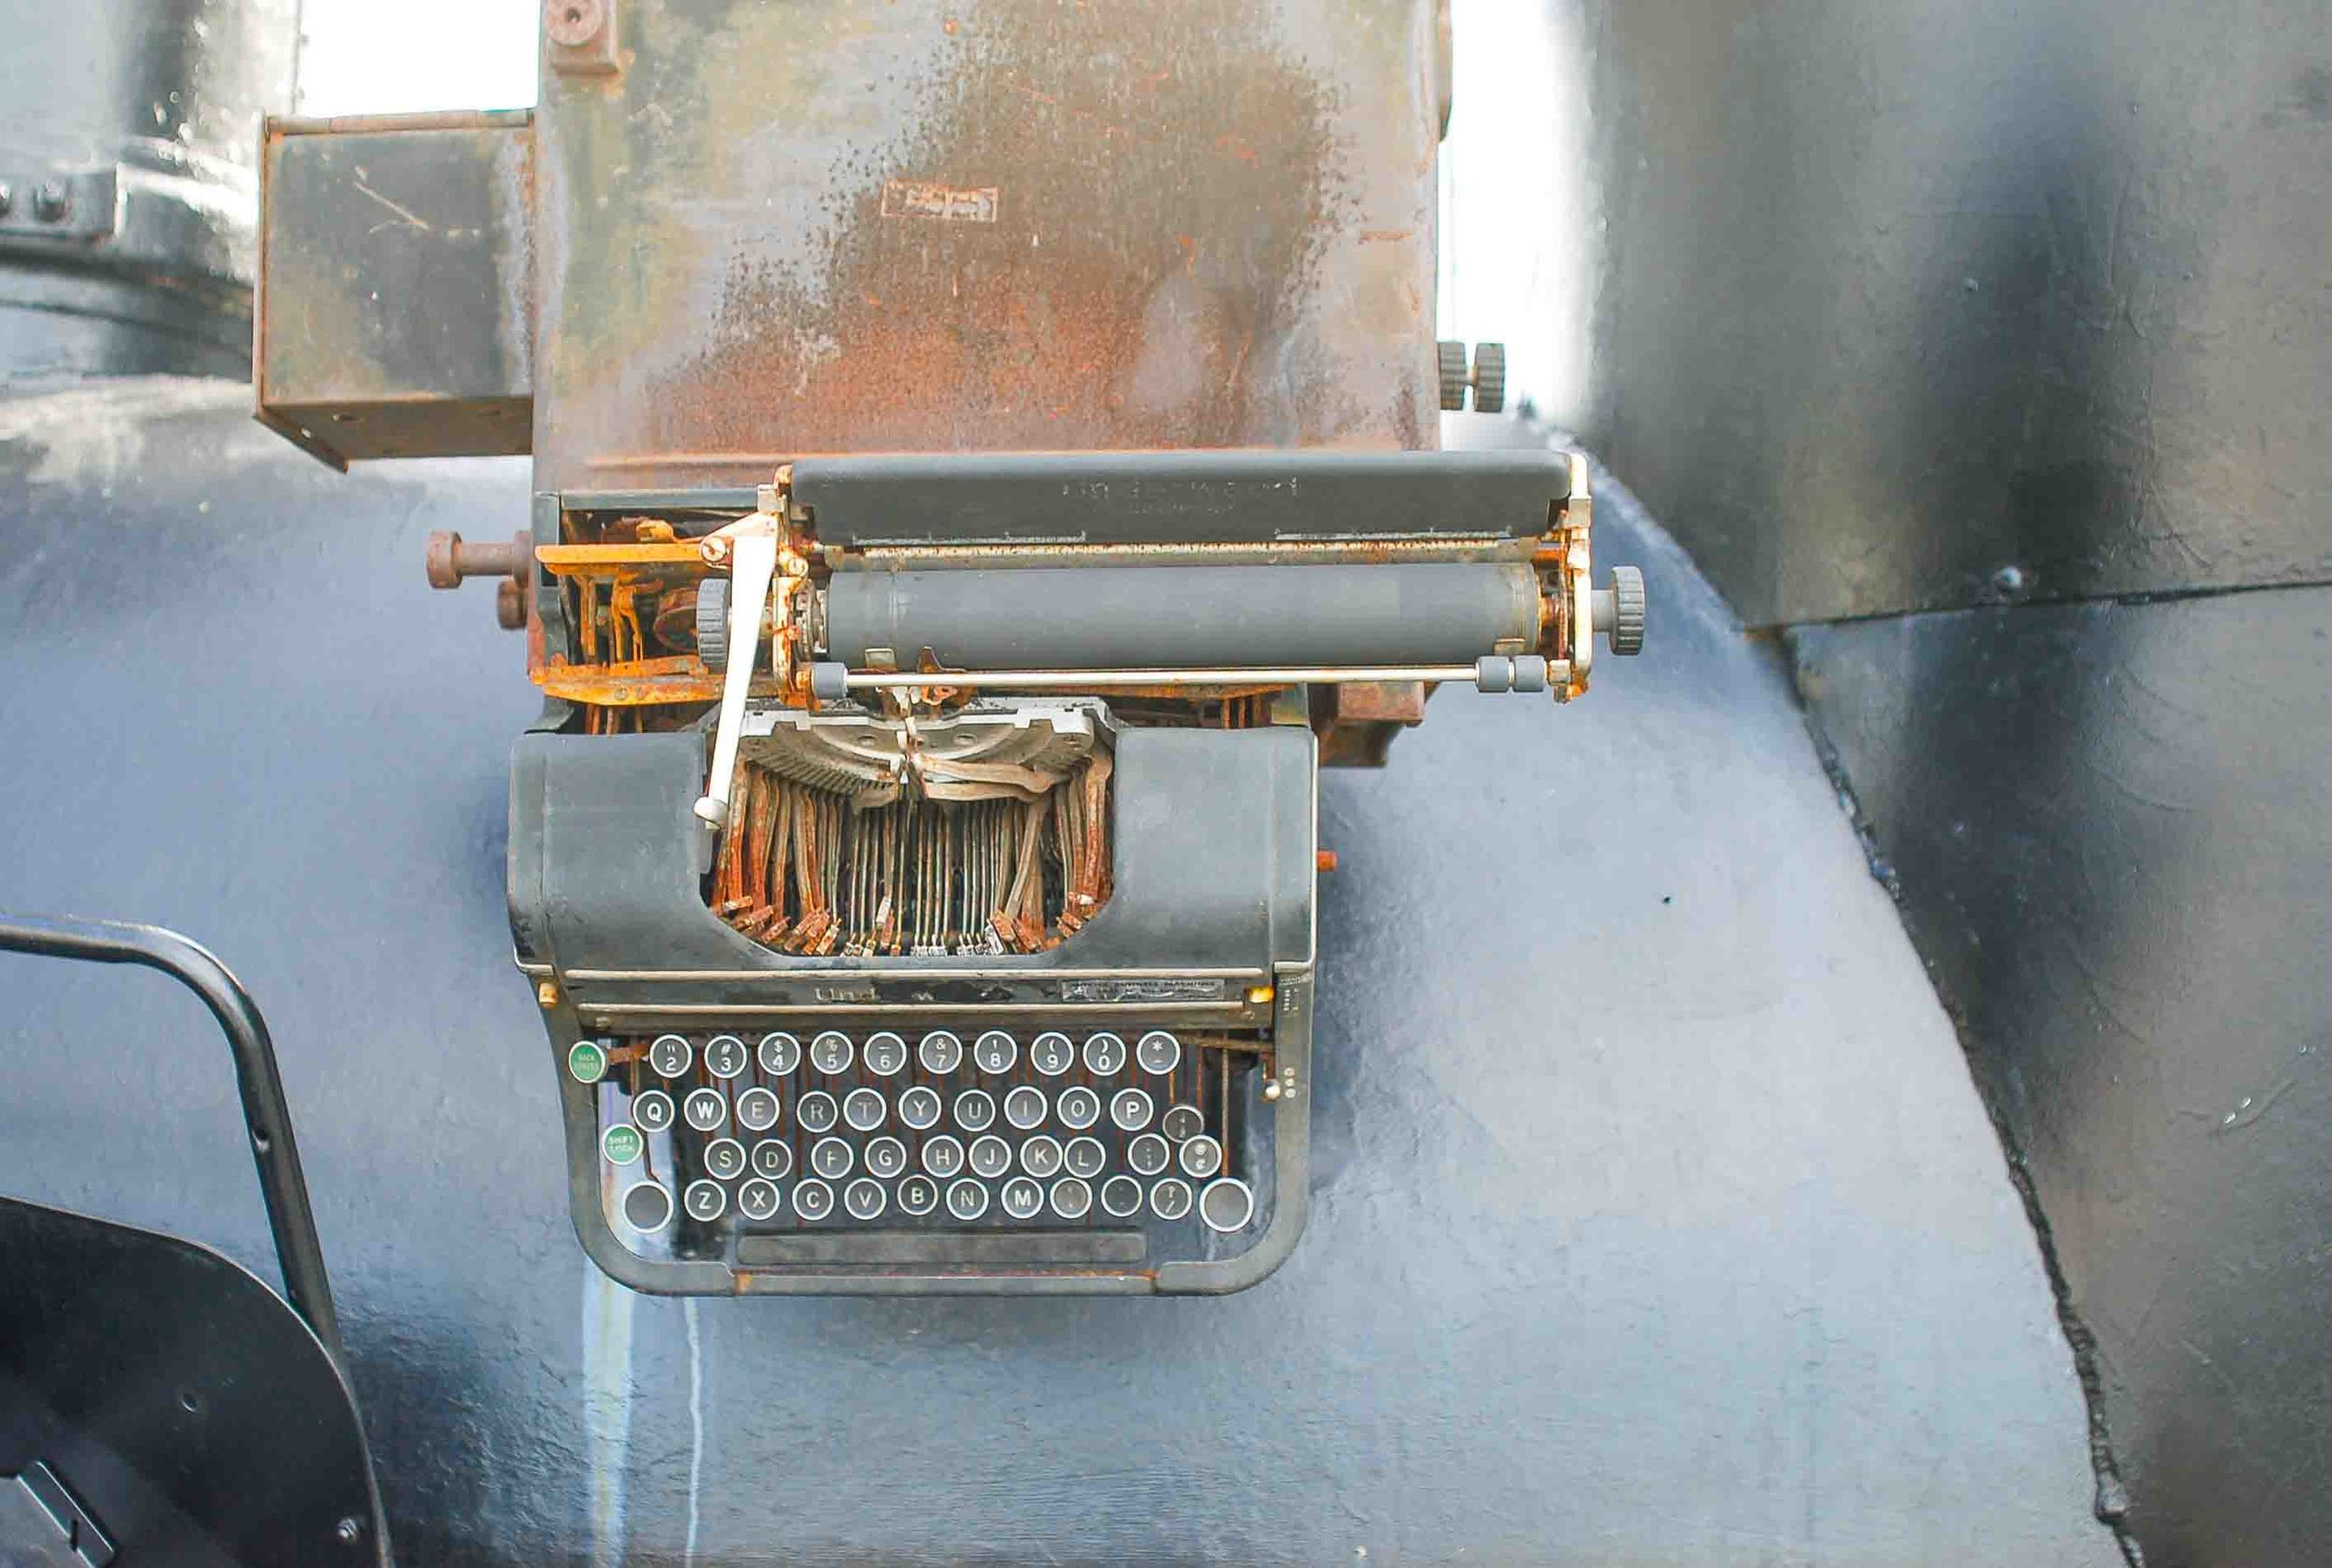 Typewriter detail on the Great Locomotive